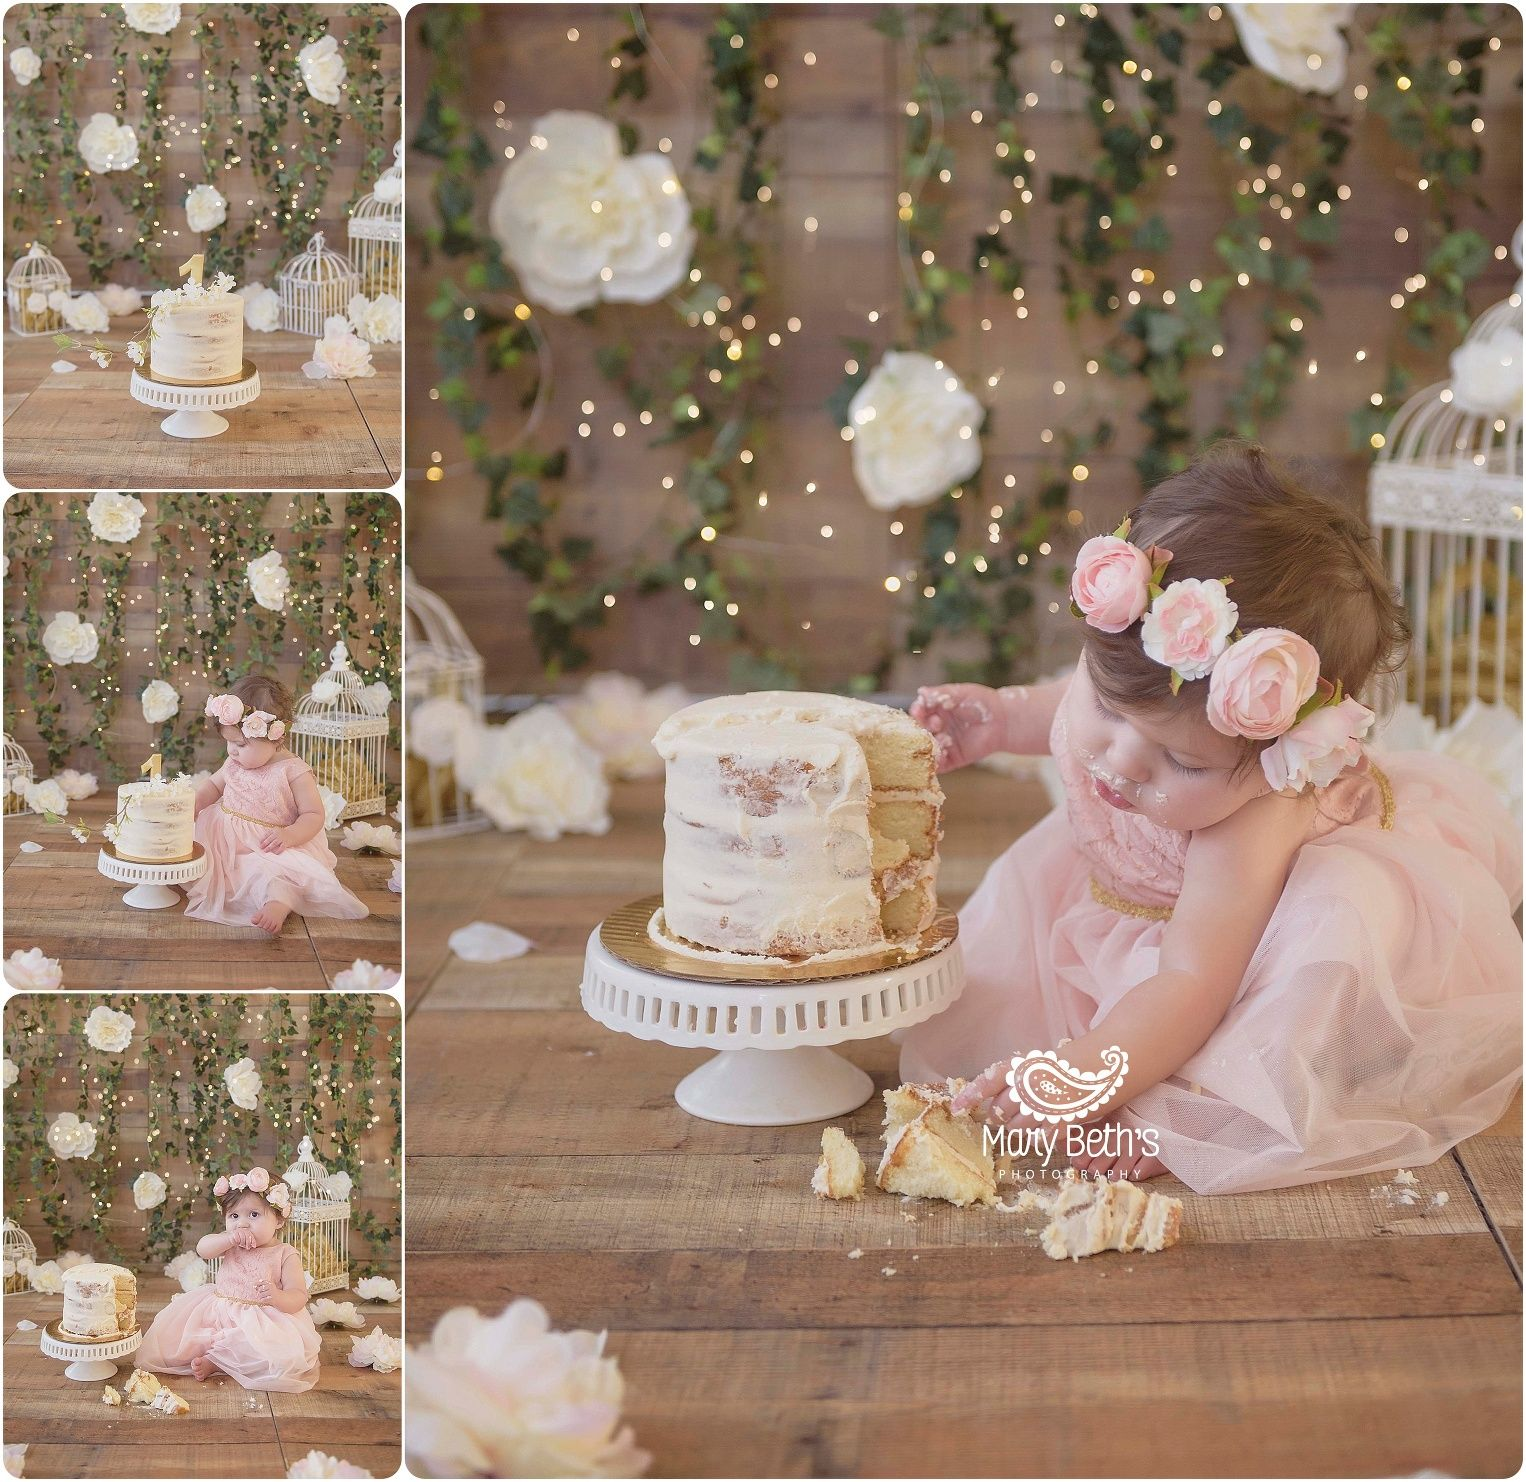 Birthday Party Ideas Augusta Ga: Floral Themed Cake Smash And 1st Birthday Portraits For